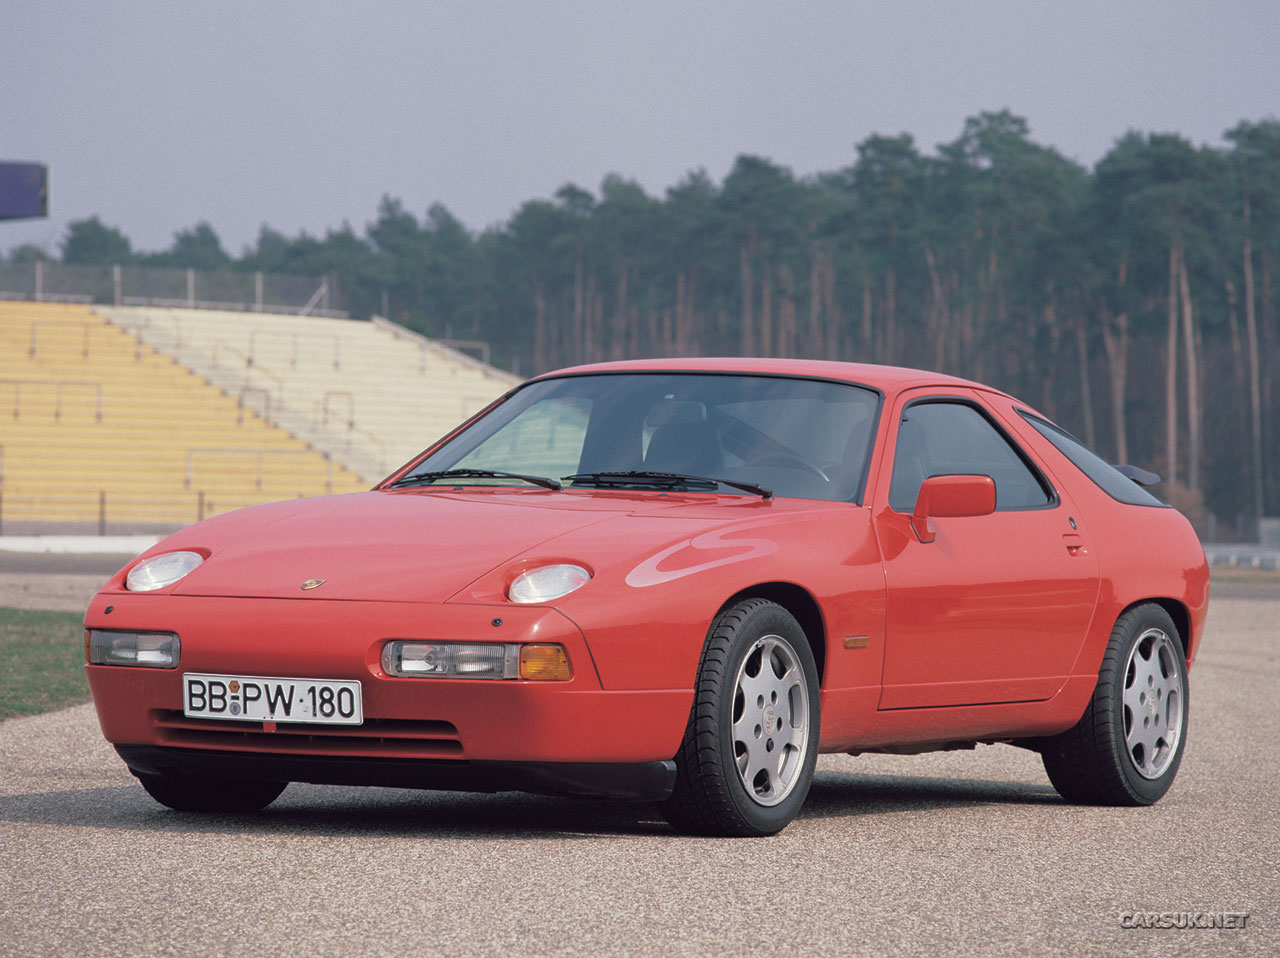 Porsche 928 to be revived - for the umpteenth time of promising